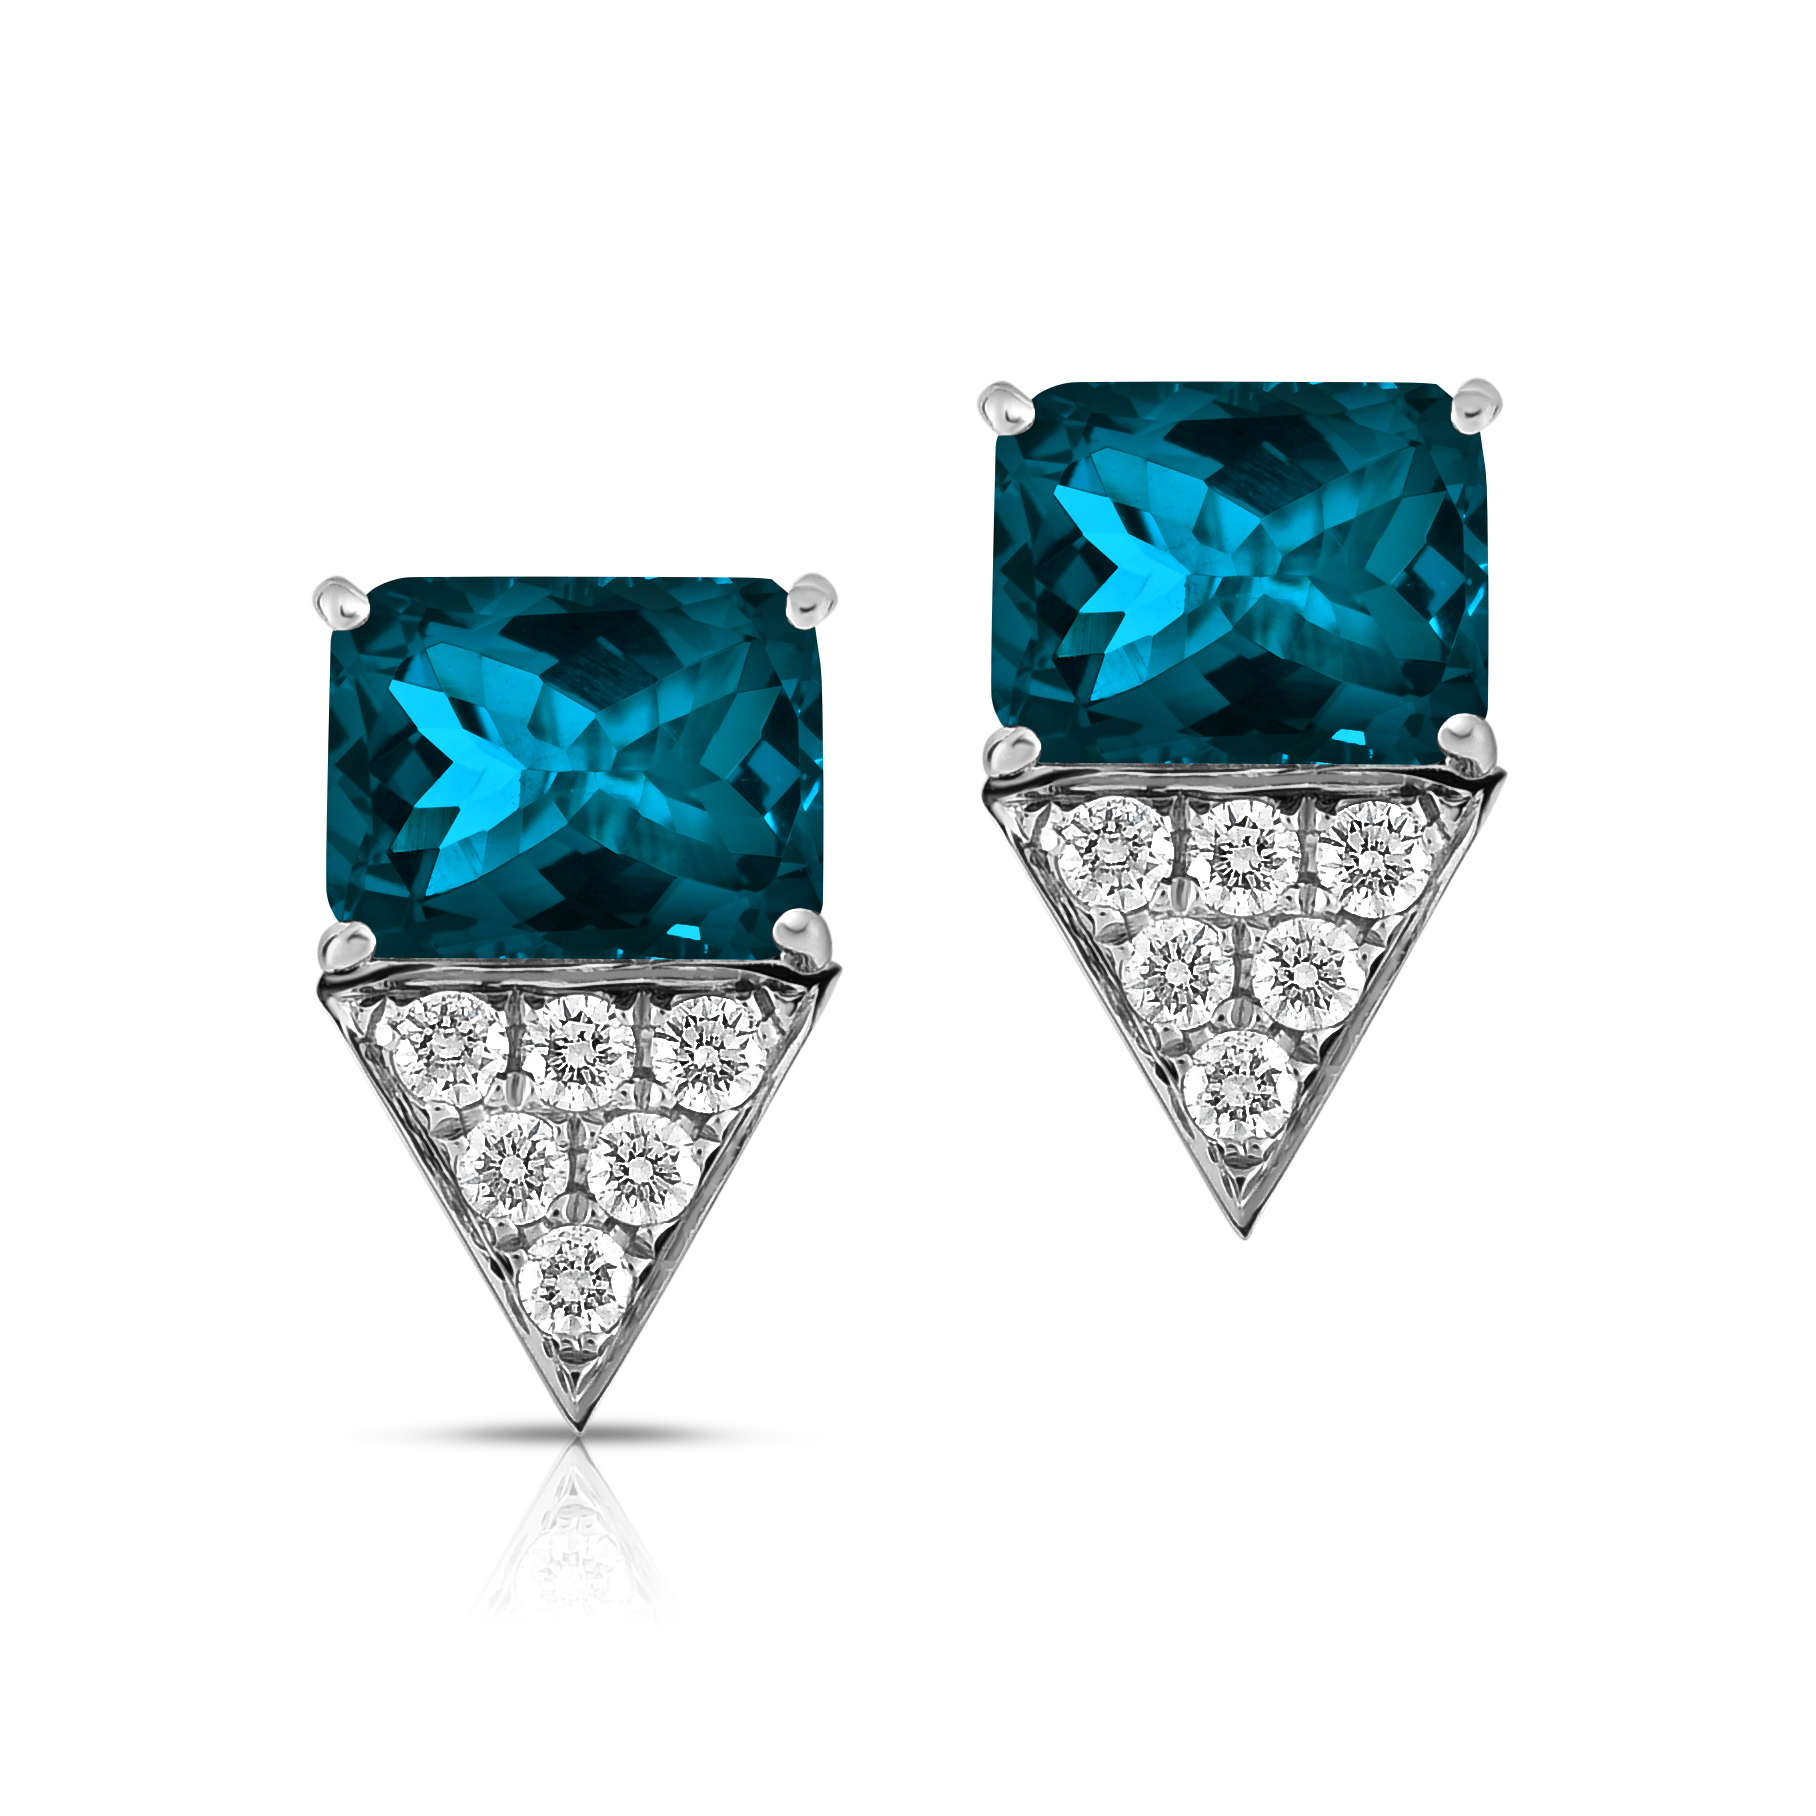 Colored Stone Earrings Jewelry Design Gallery